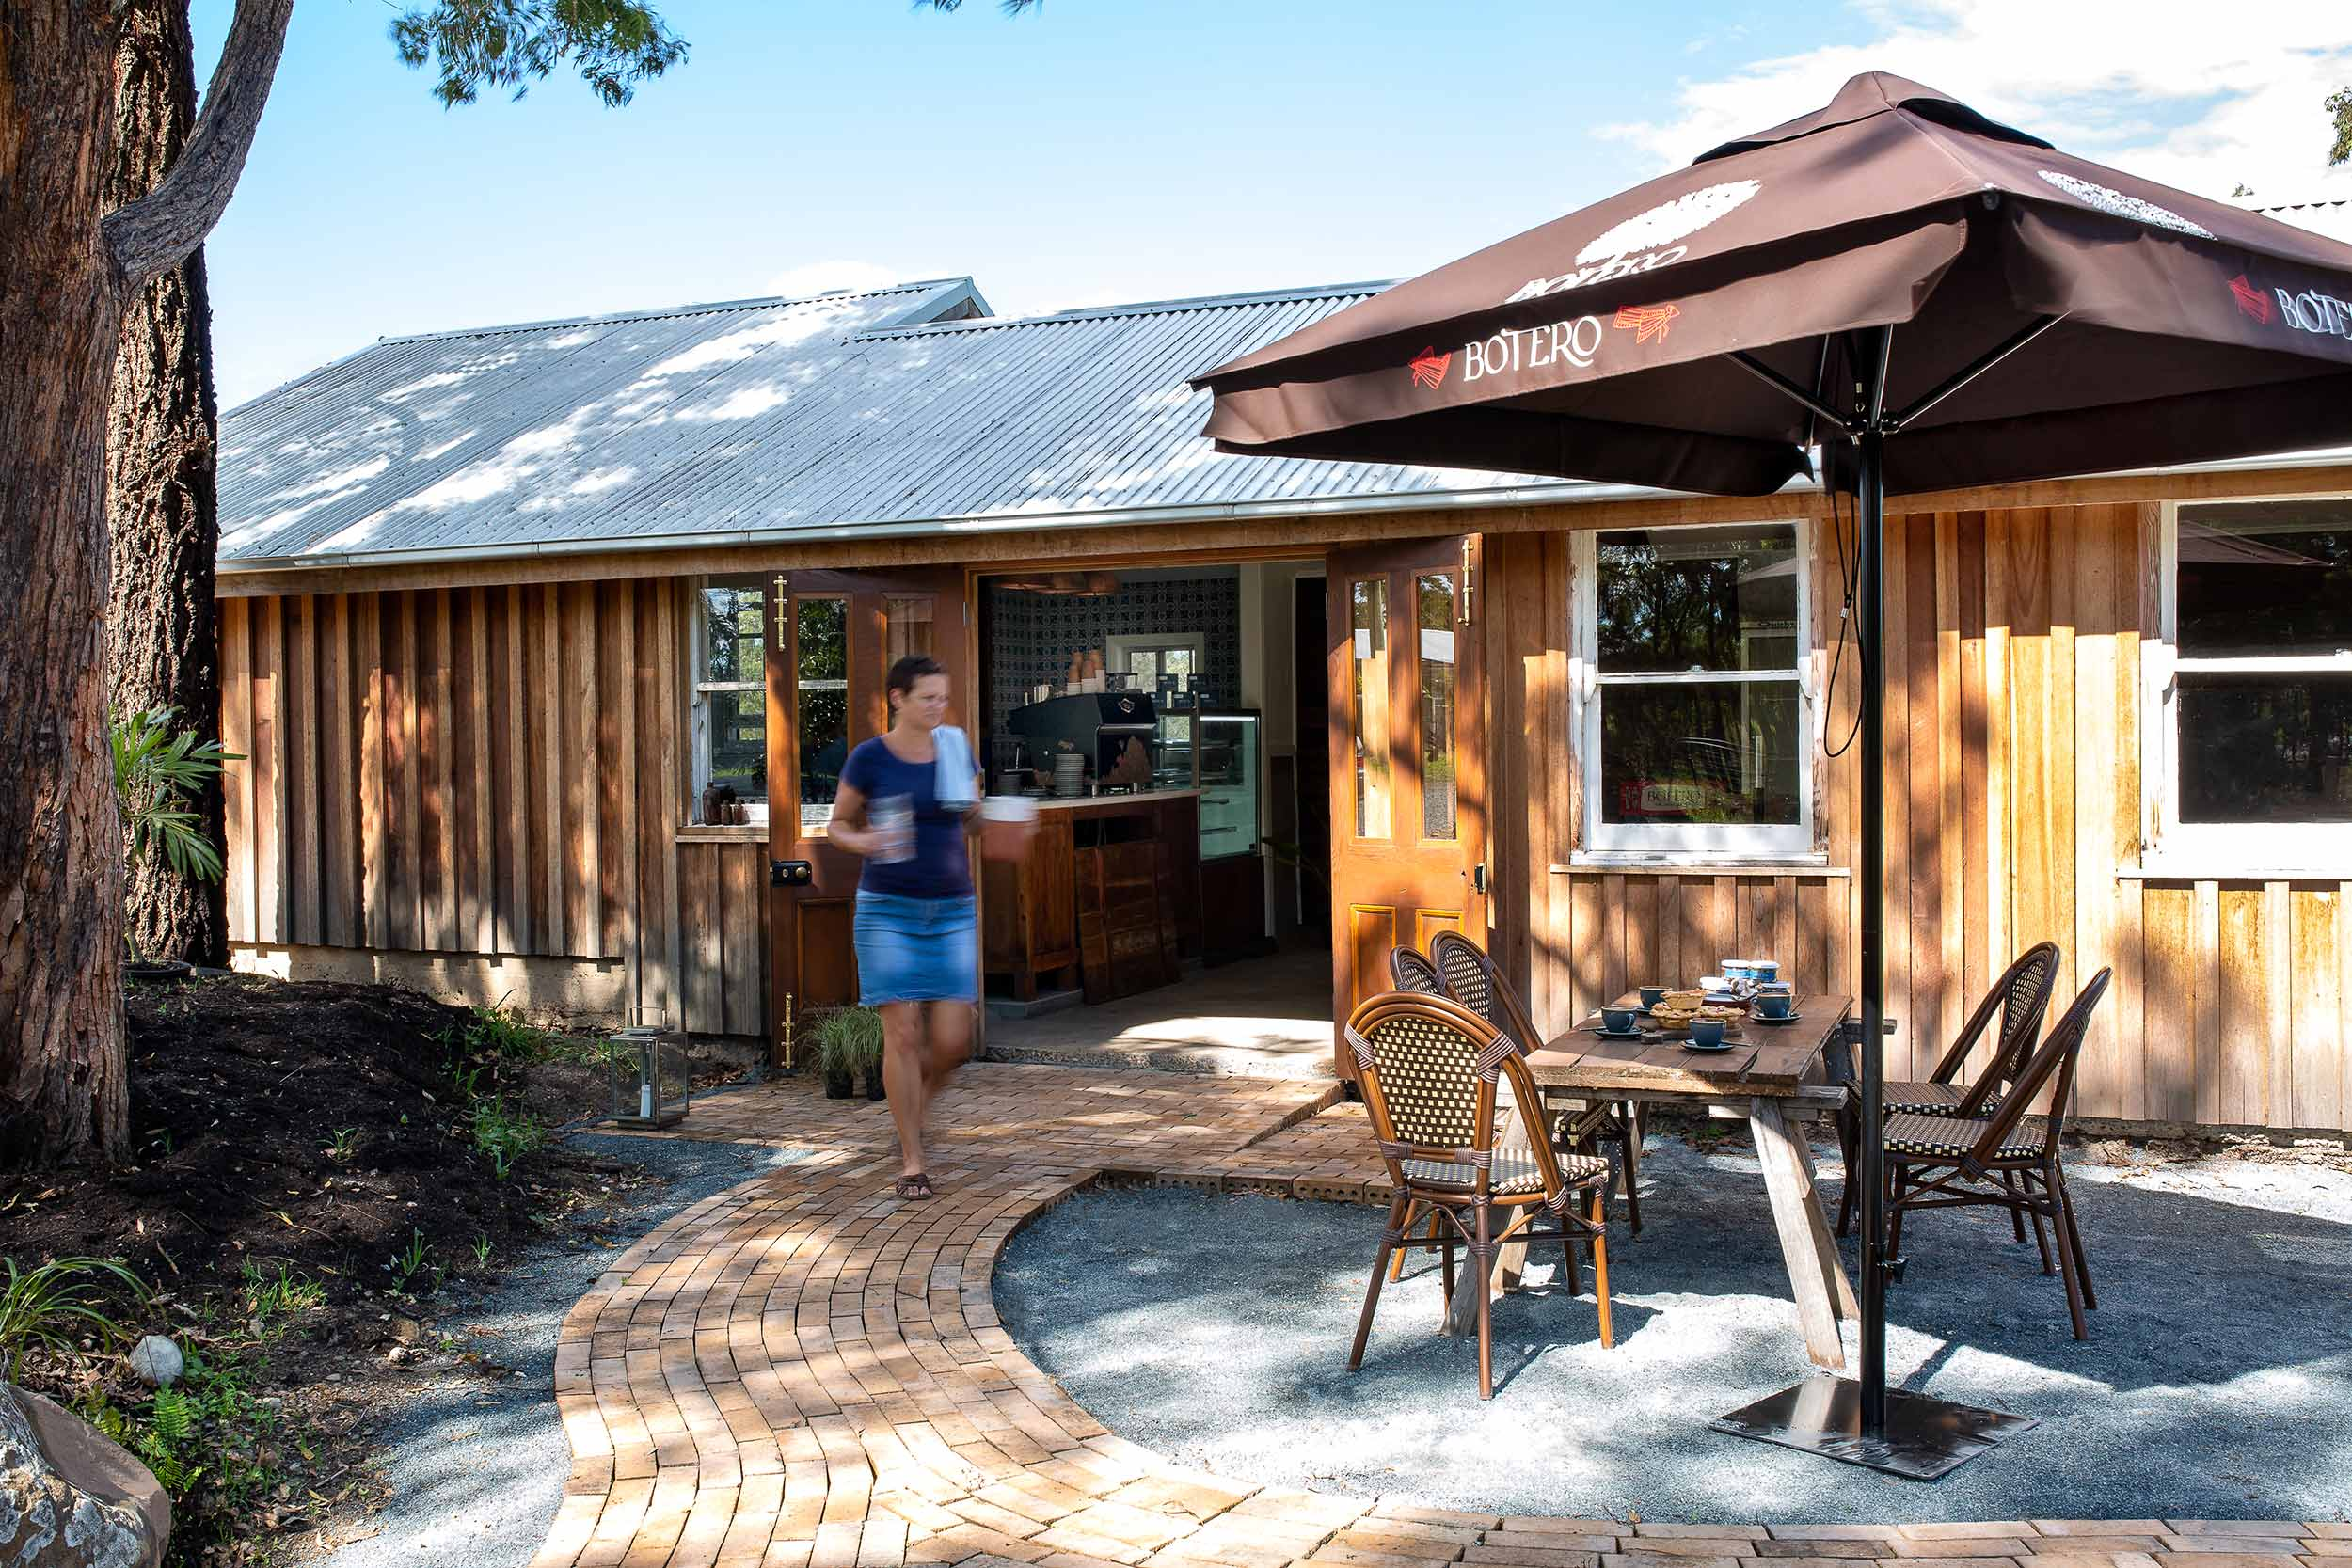 glft-valley-view-farm-co-cafe-outside.jpg